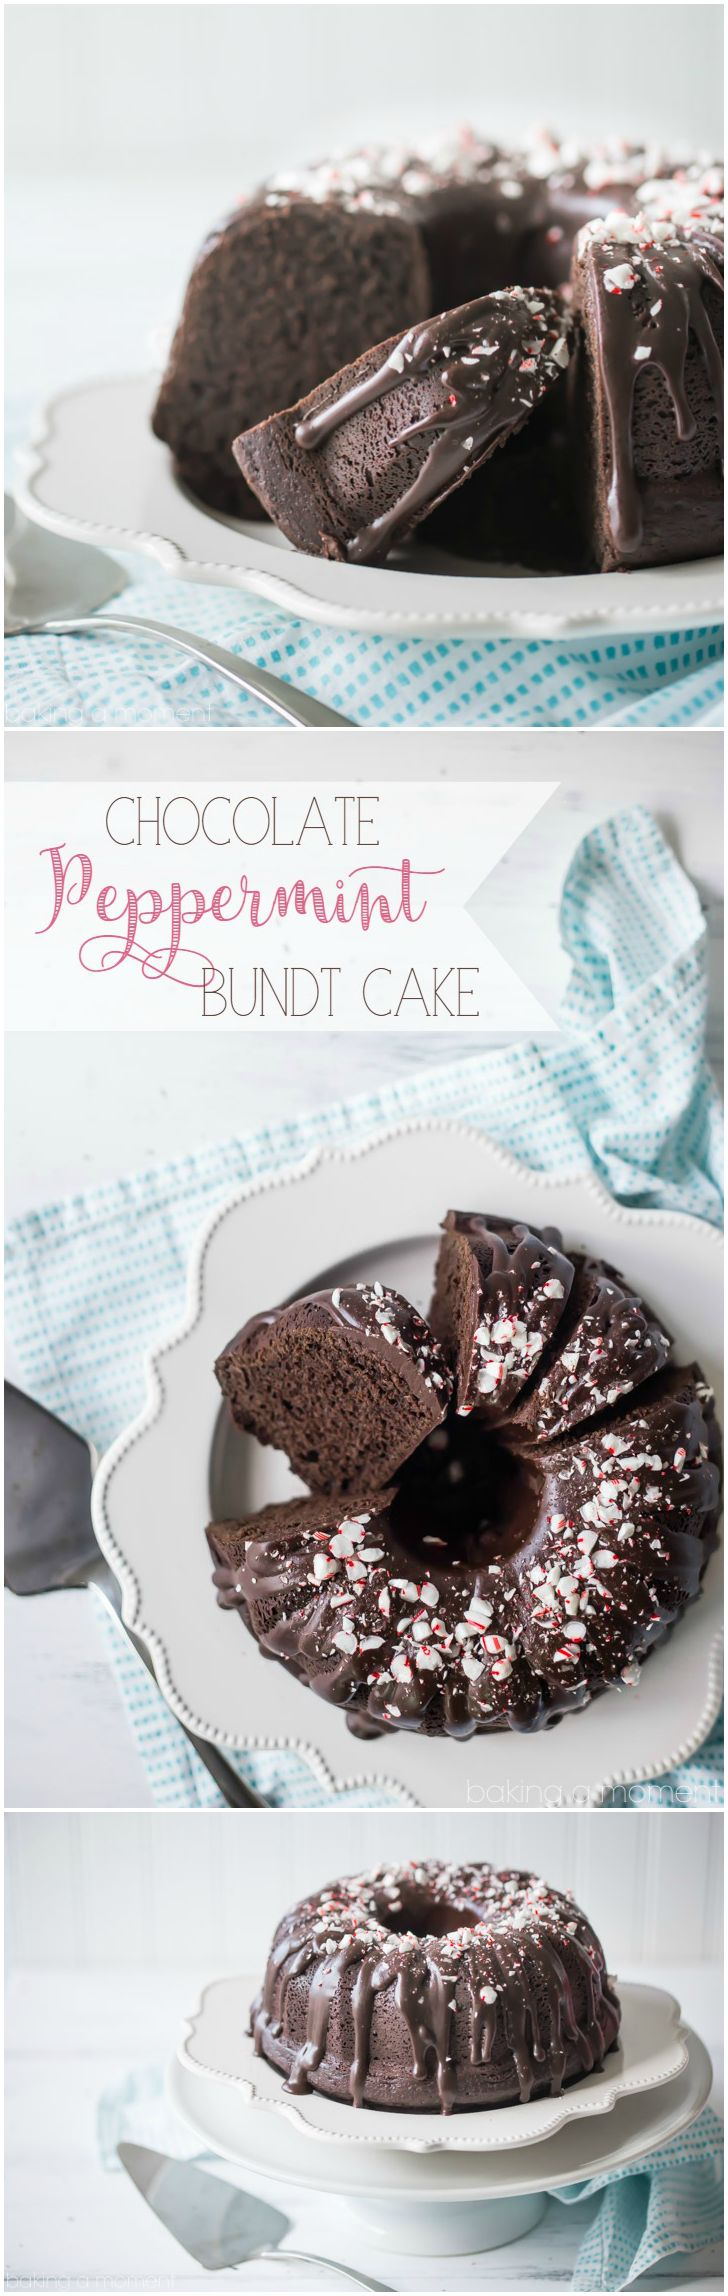 LOVED this cake! So moist and chocolate-y, with lots of cool mint. Perfect treat for the winter holidays!